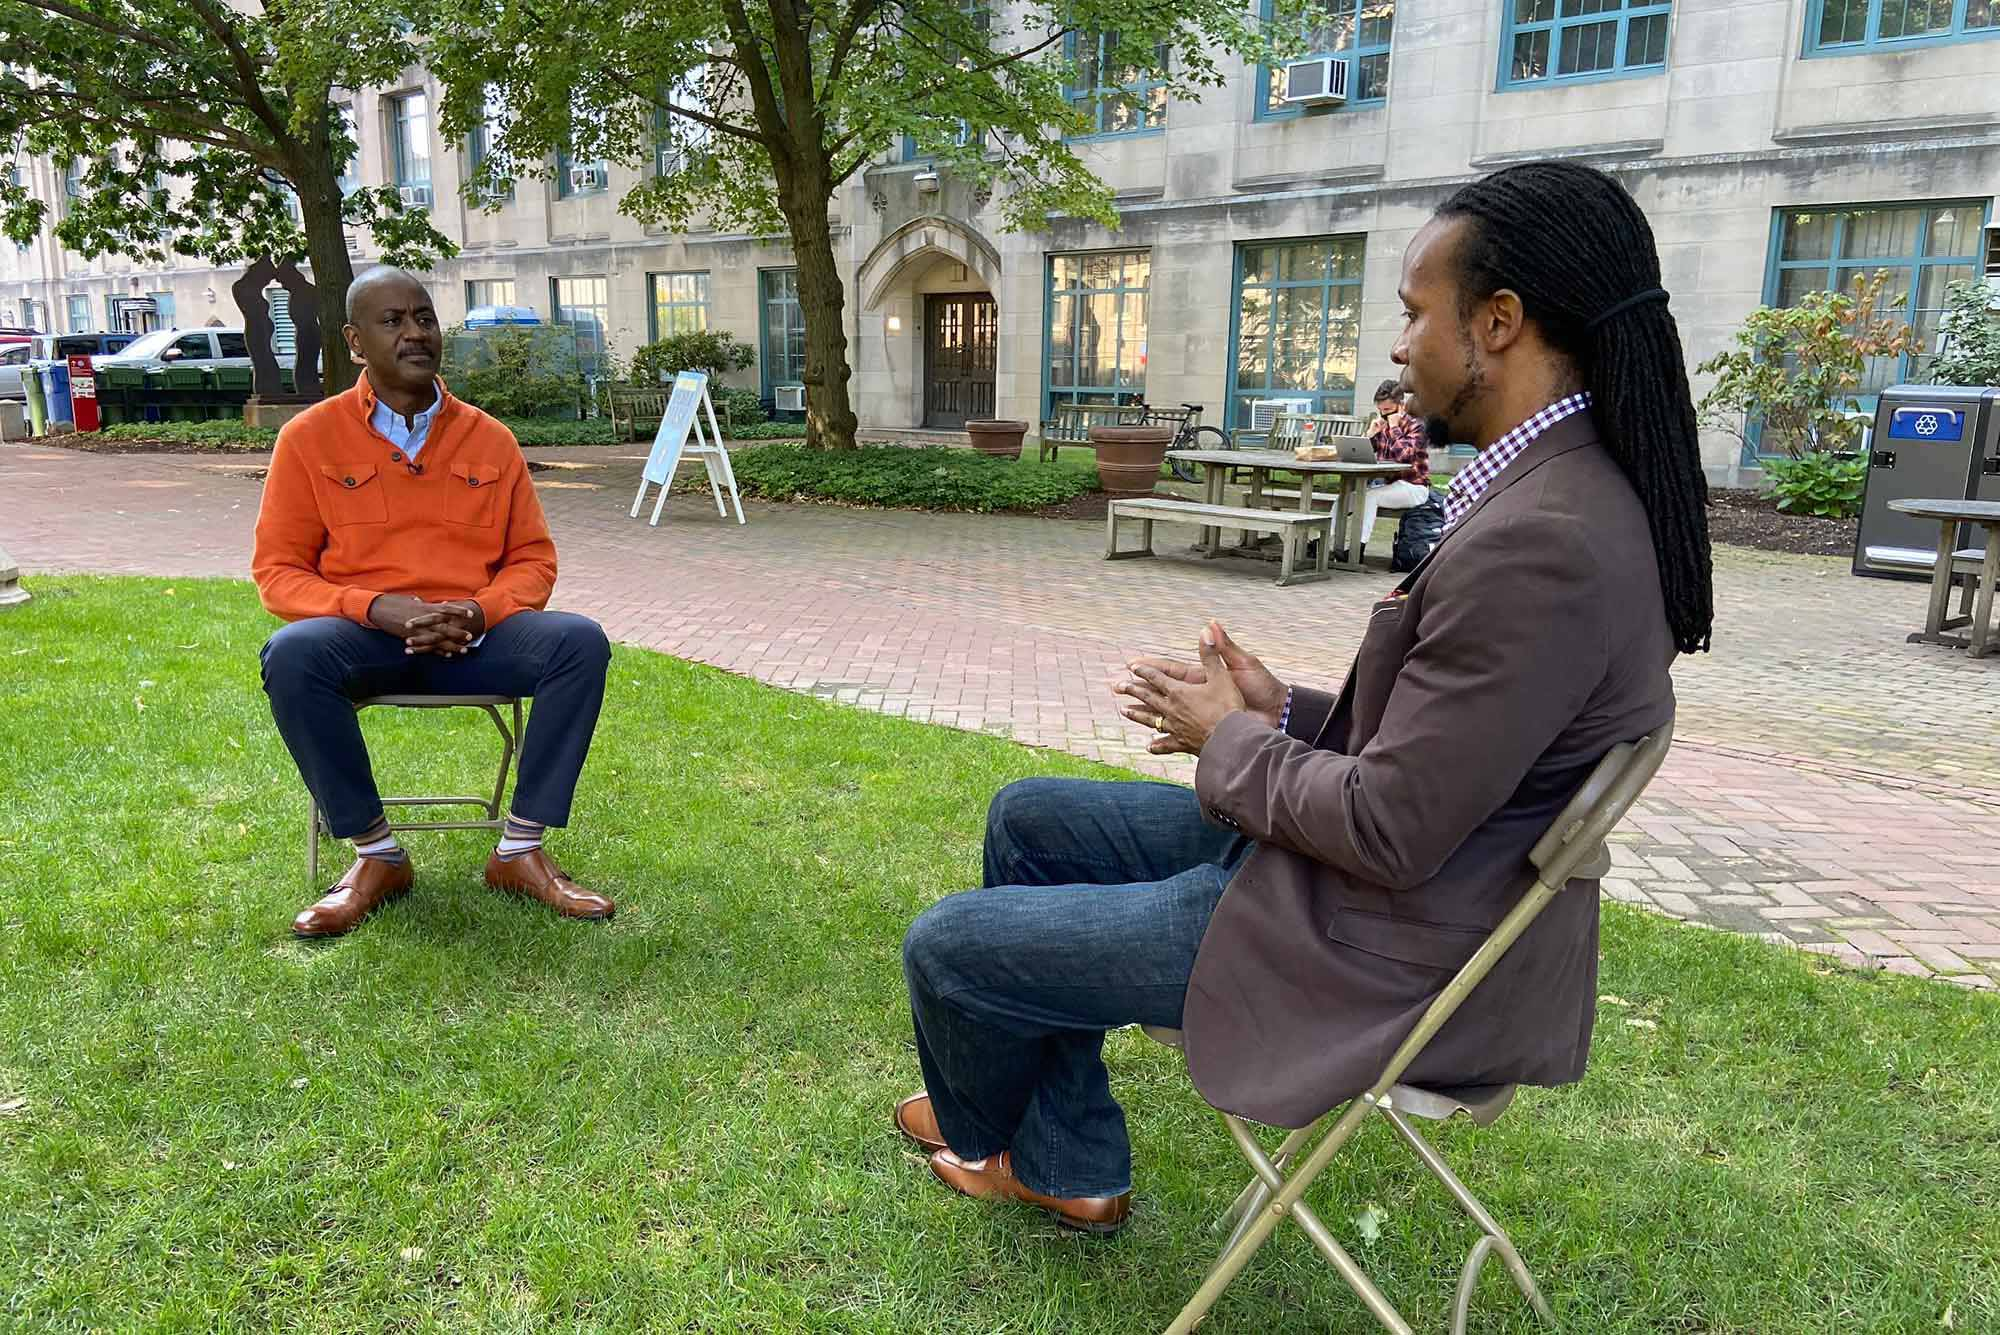 Otis Rolley III, Senior Vice President, U.S. Equity and Economic Opportunity Initiative at The Rockefeller Foundation, and Ibram X. Kendi, Director and Founder of the Boston University Center for Antiracist Research, in a discussion outdoors at Boston University. Photo courtesy of The Rockefeller Foundation